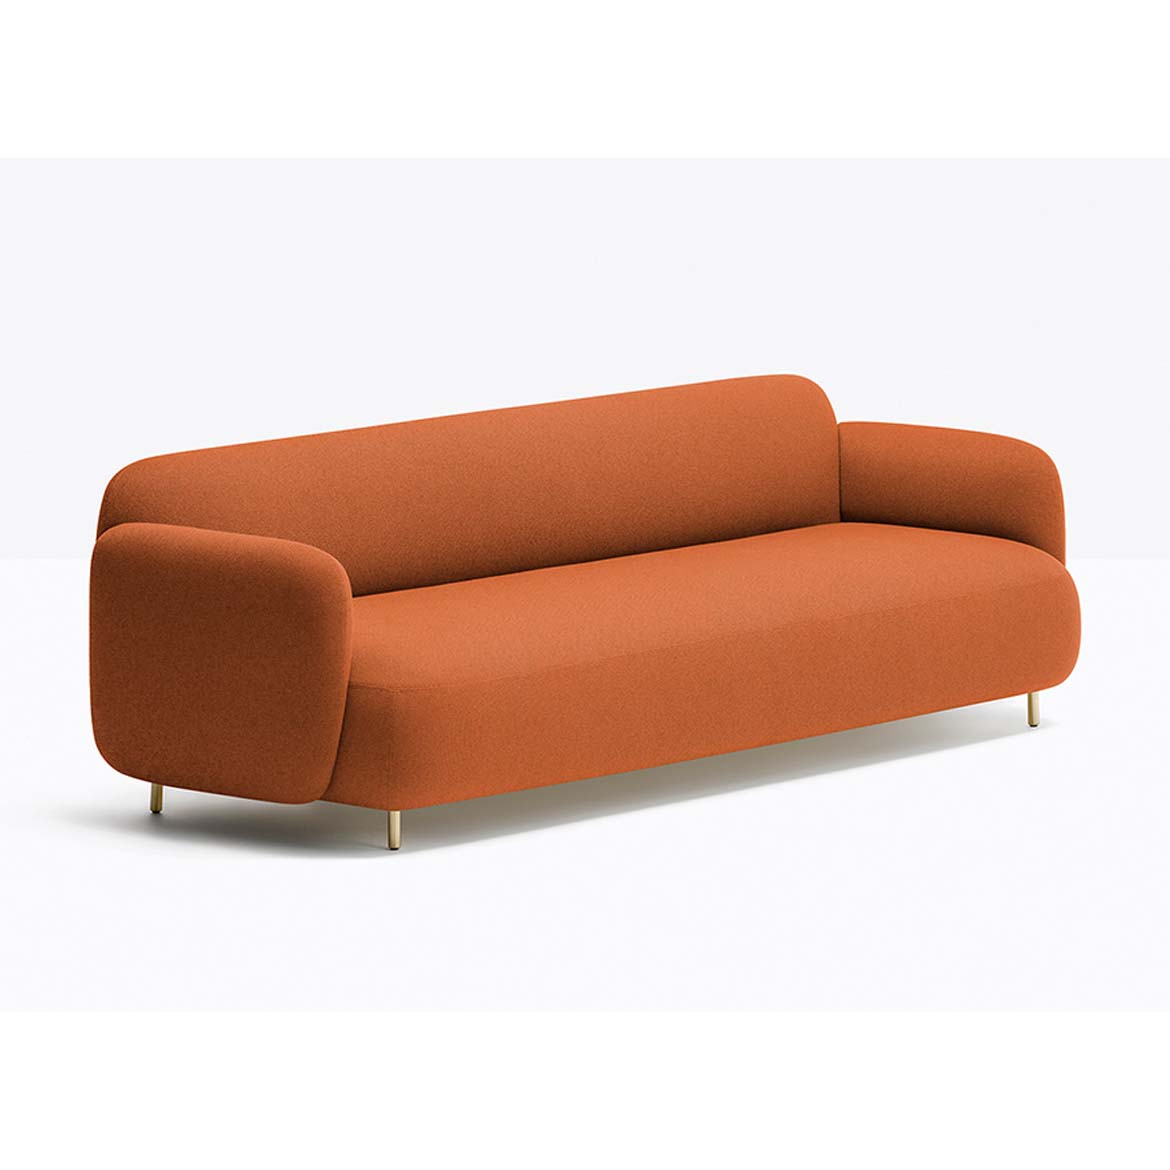 Three-seater sofa with upholstered body and powder coated metal frame. Avaliable in many colours and finishes.